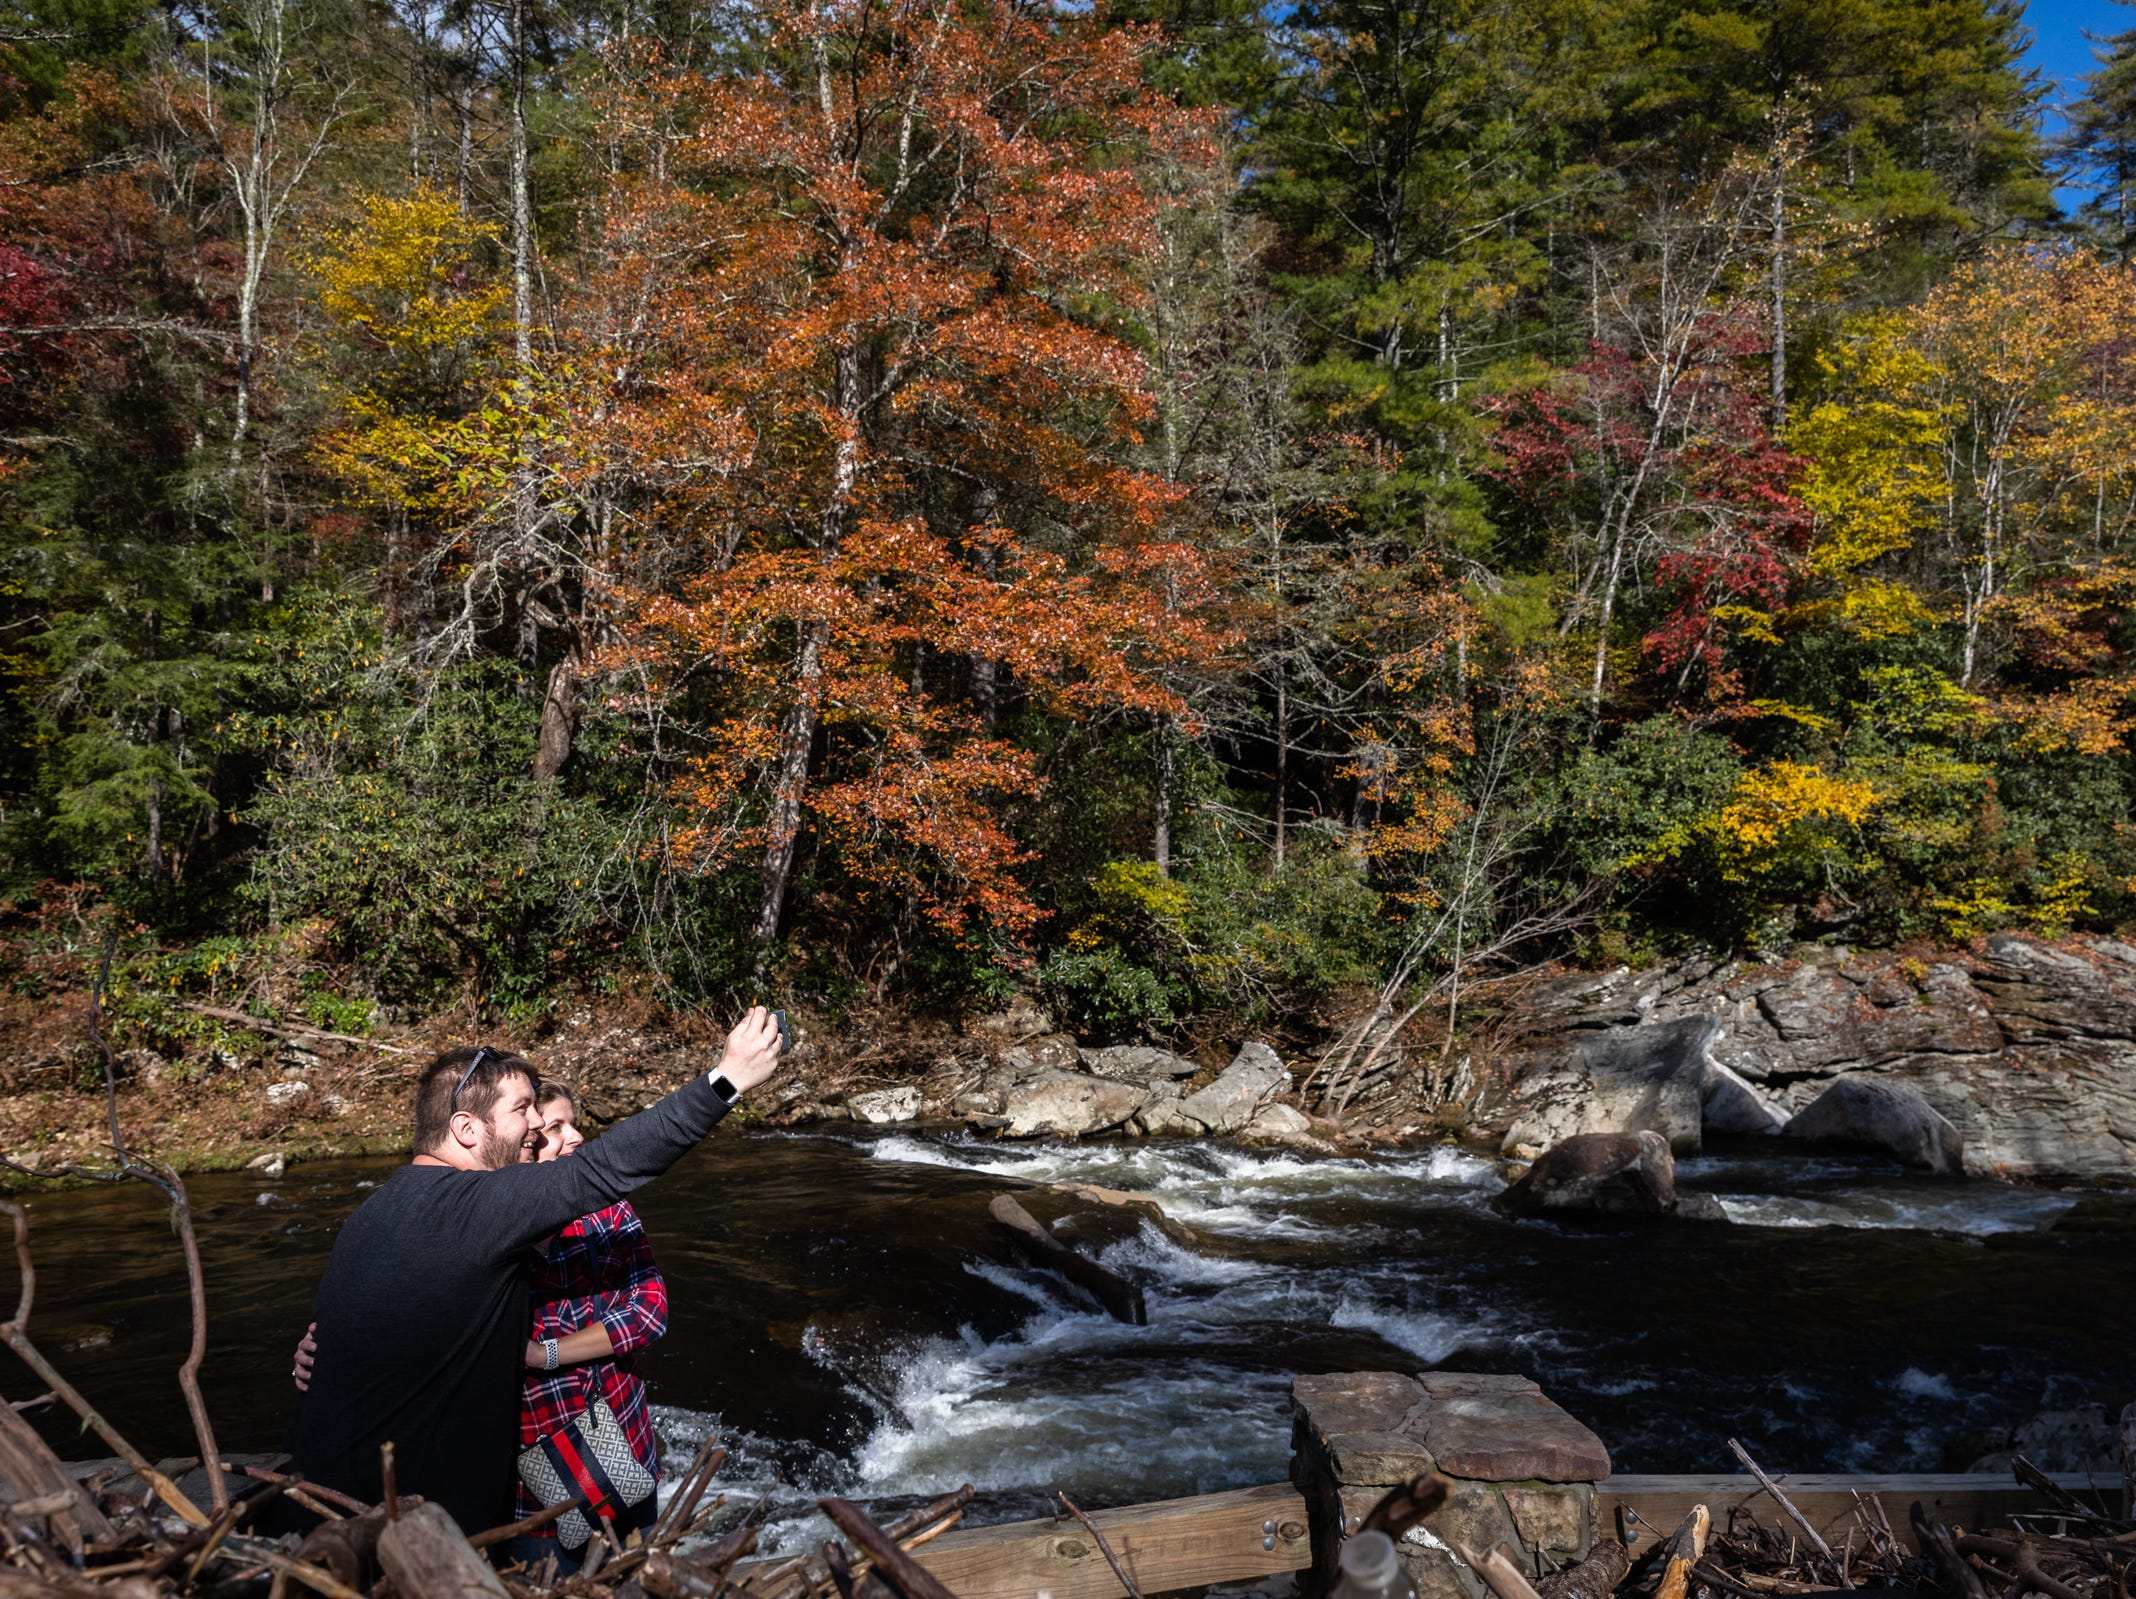 A couple takes a cell phone photograph together at Linville Falls on the Blue Ridge Parkway, Oct. 28, 2018.